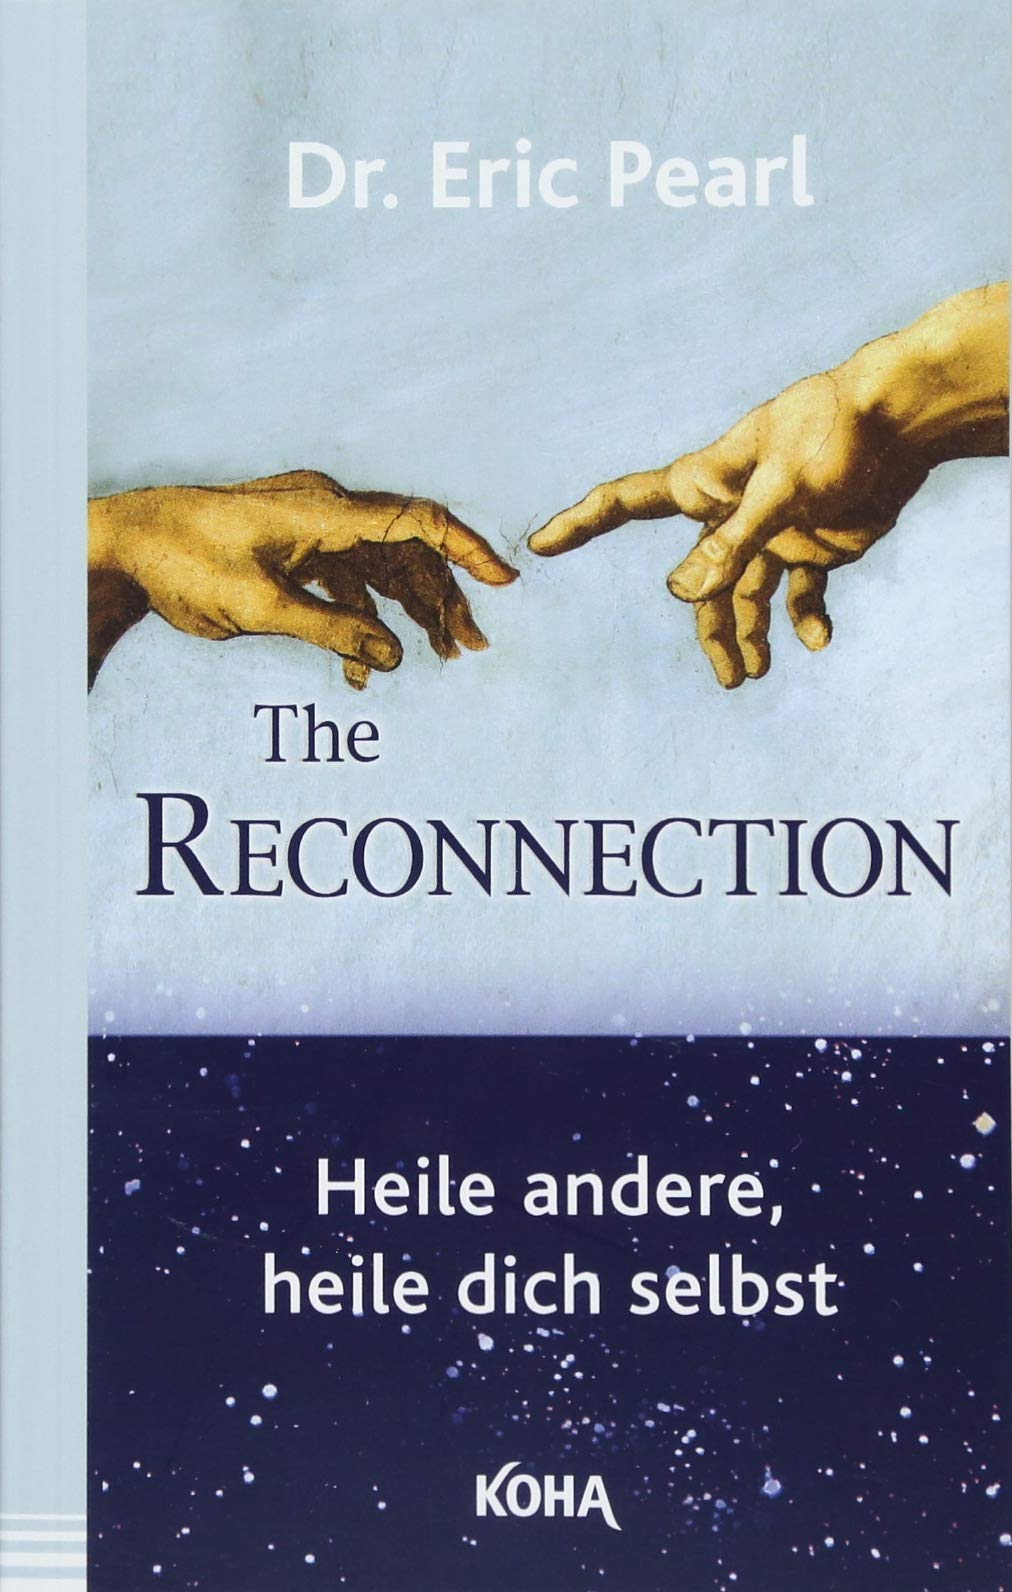 The Reconnection: Heile andere heile dich selbst